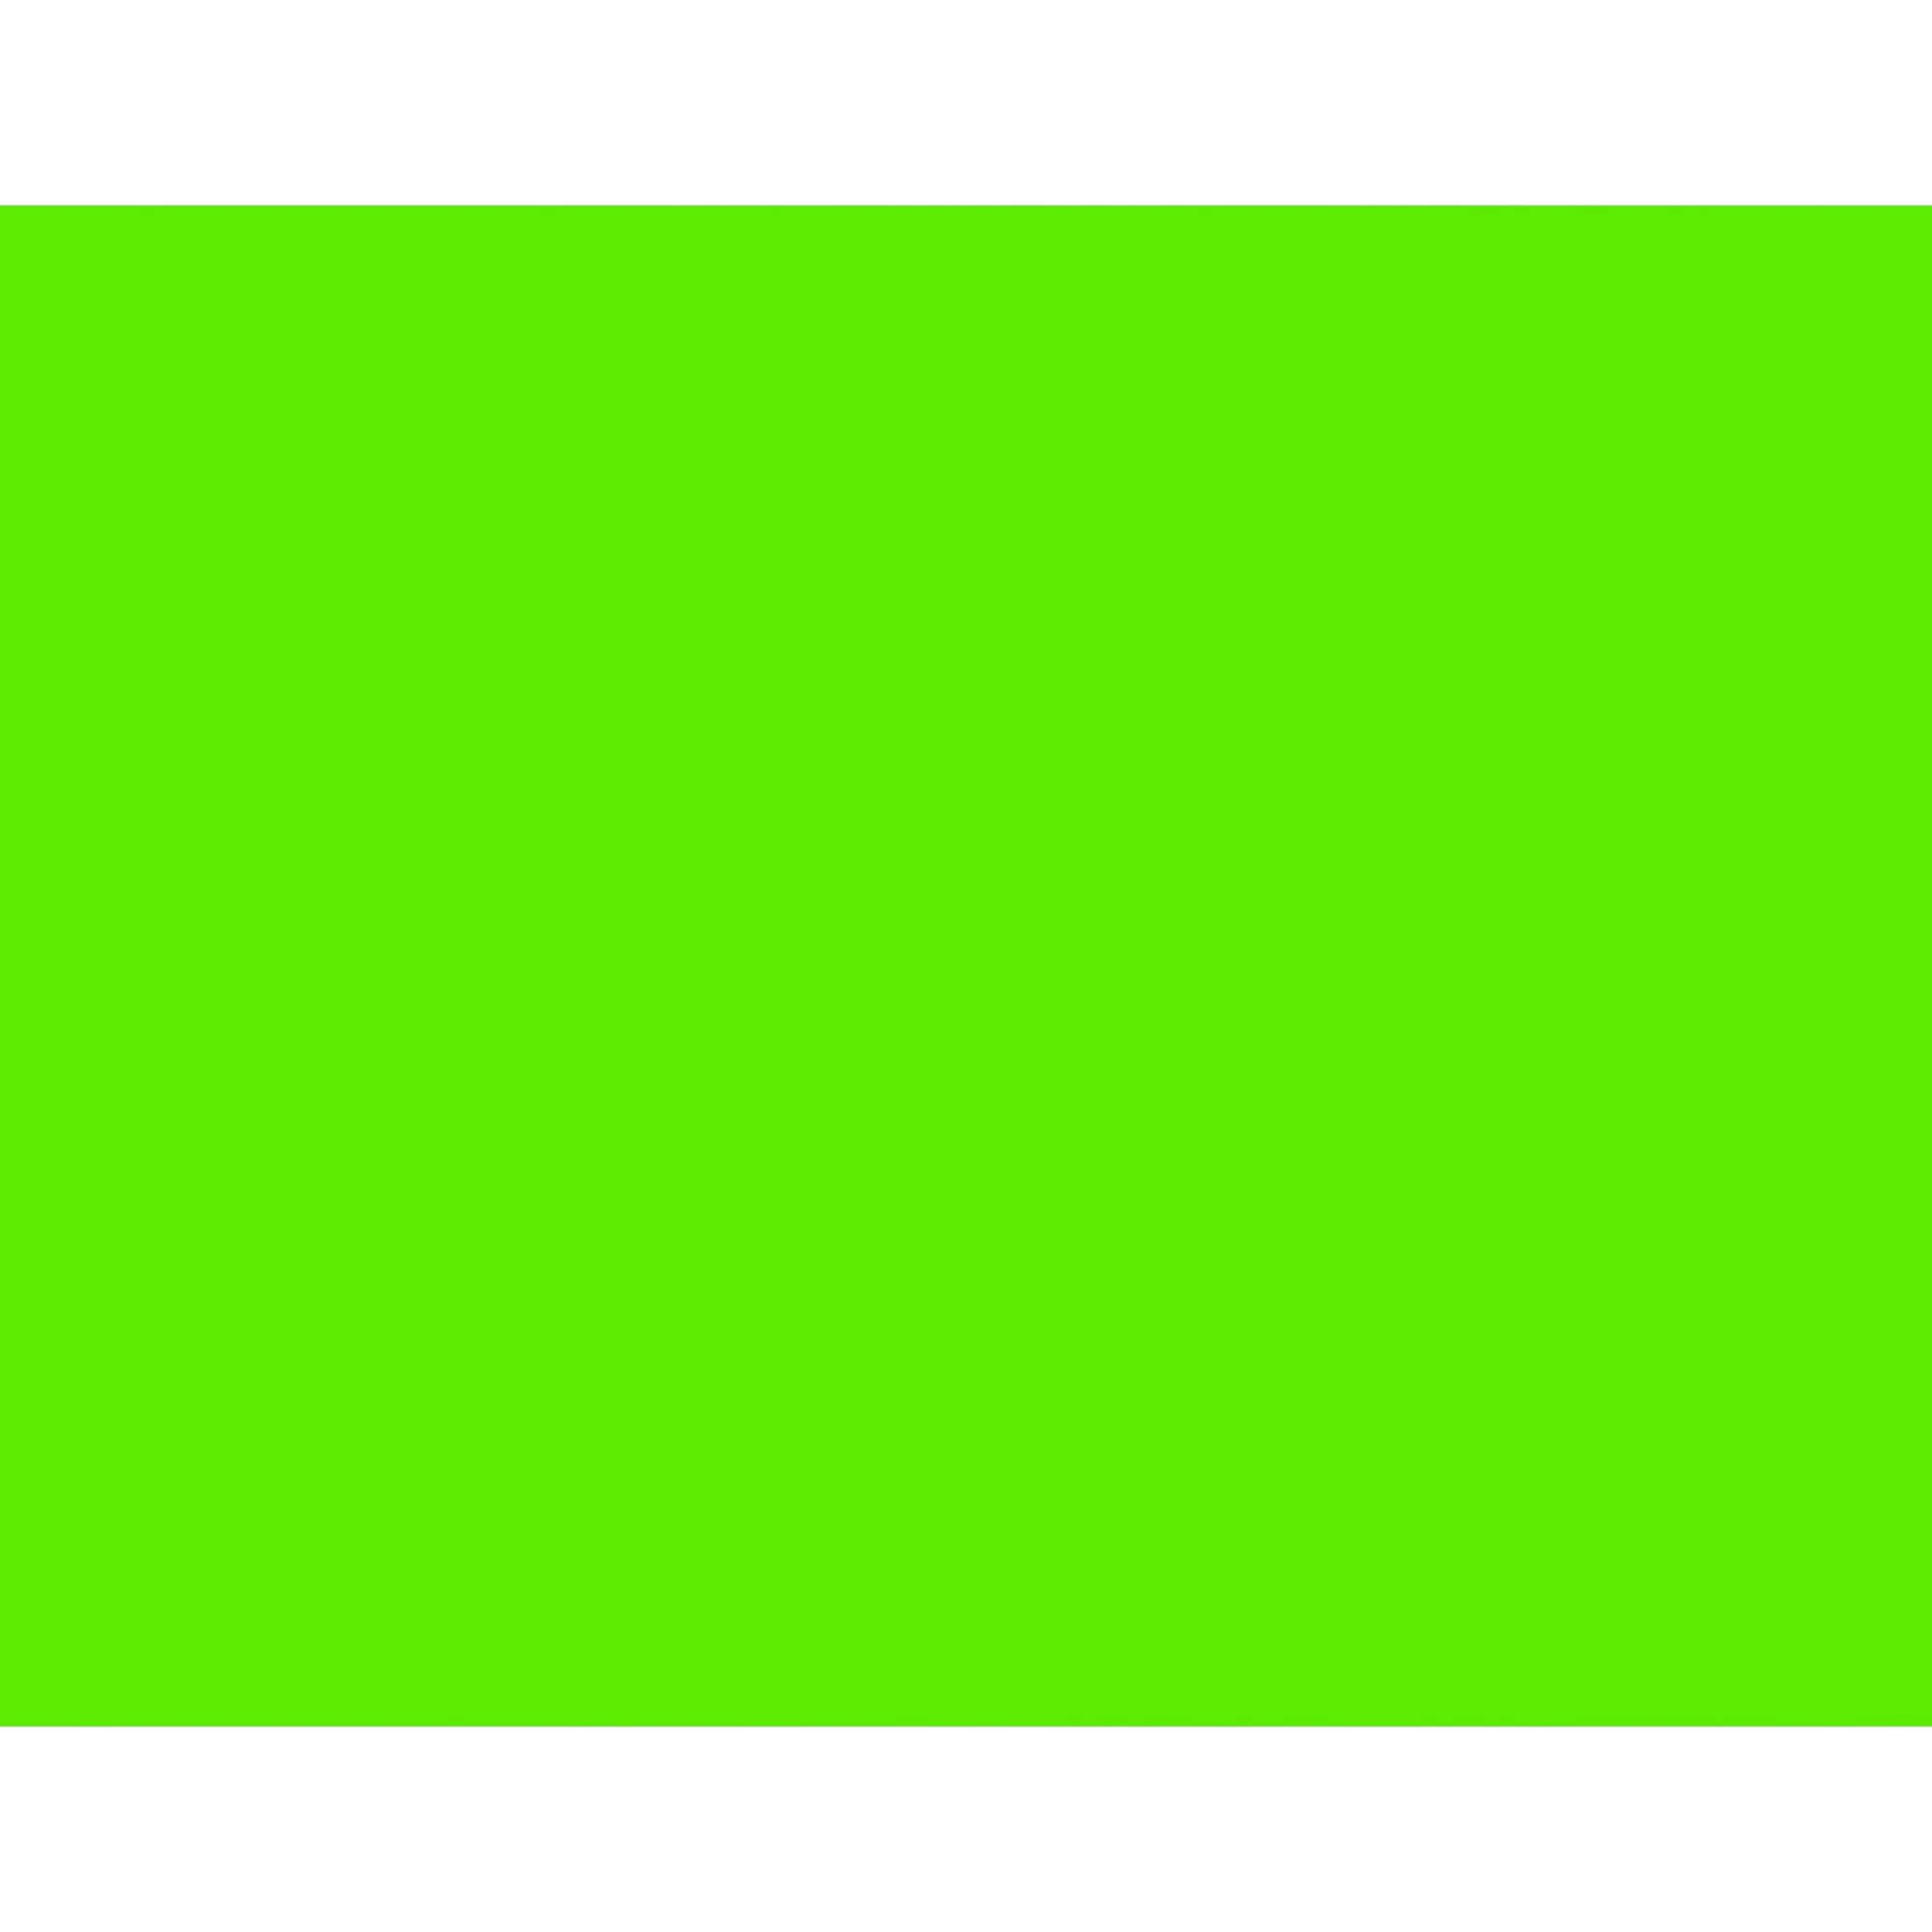 """BAZIC 22"""" X 28"""" Neon Green Poster Board, Colored Paper Drawing Painting Scrapbooking Graphic Display Carton, Art Craft Projects School Home DIY Decor (Case of 25)"""